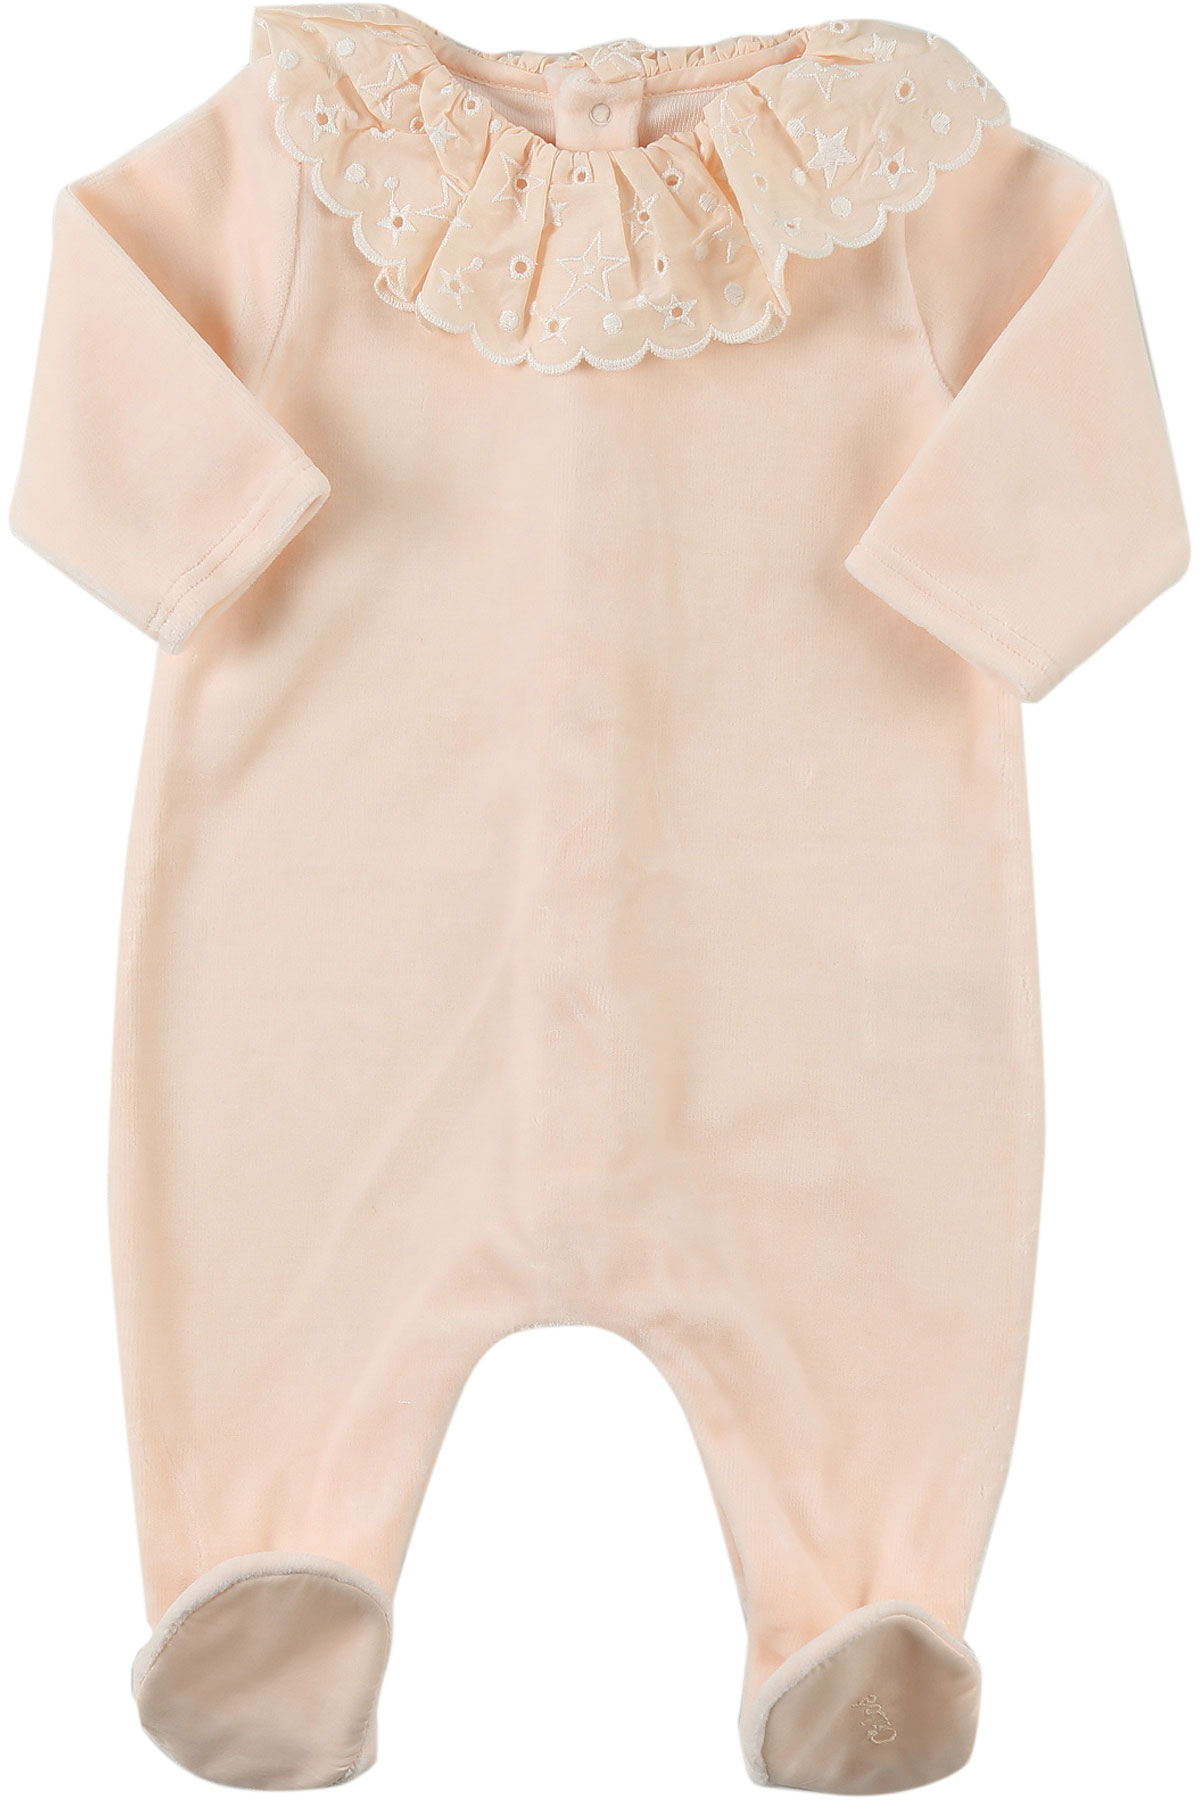 Image of Chloe Baby Bodysuits & Onesies for Girls, Pink, Cotton, 2017, 1M 3M